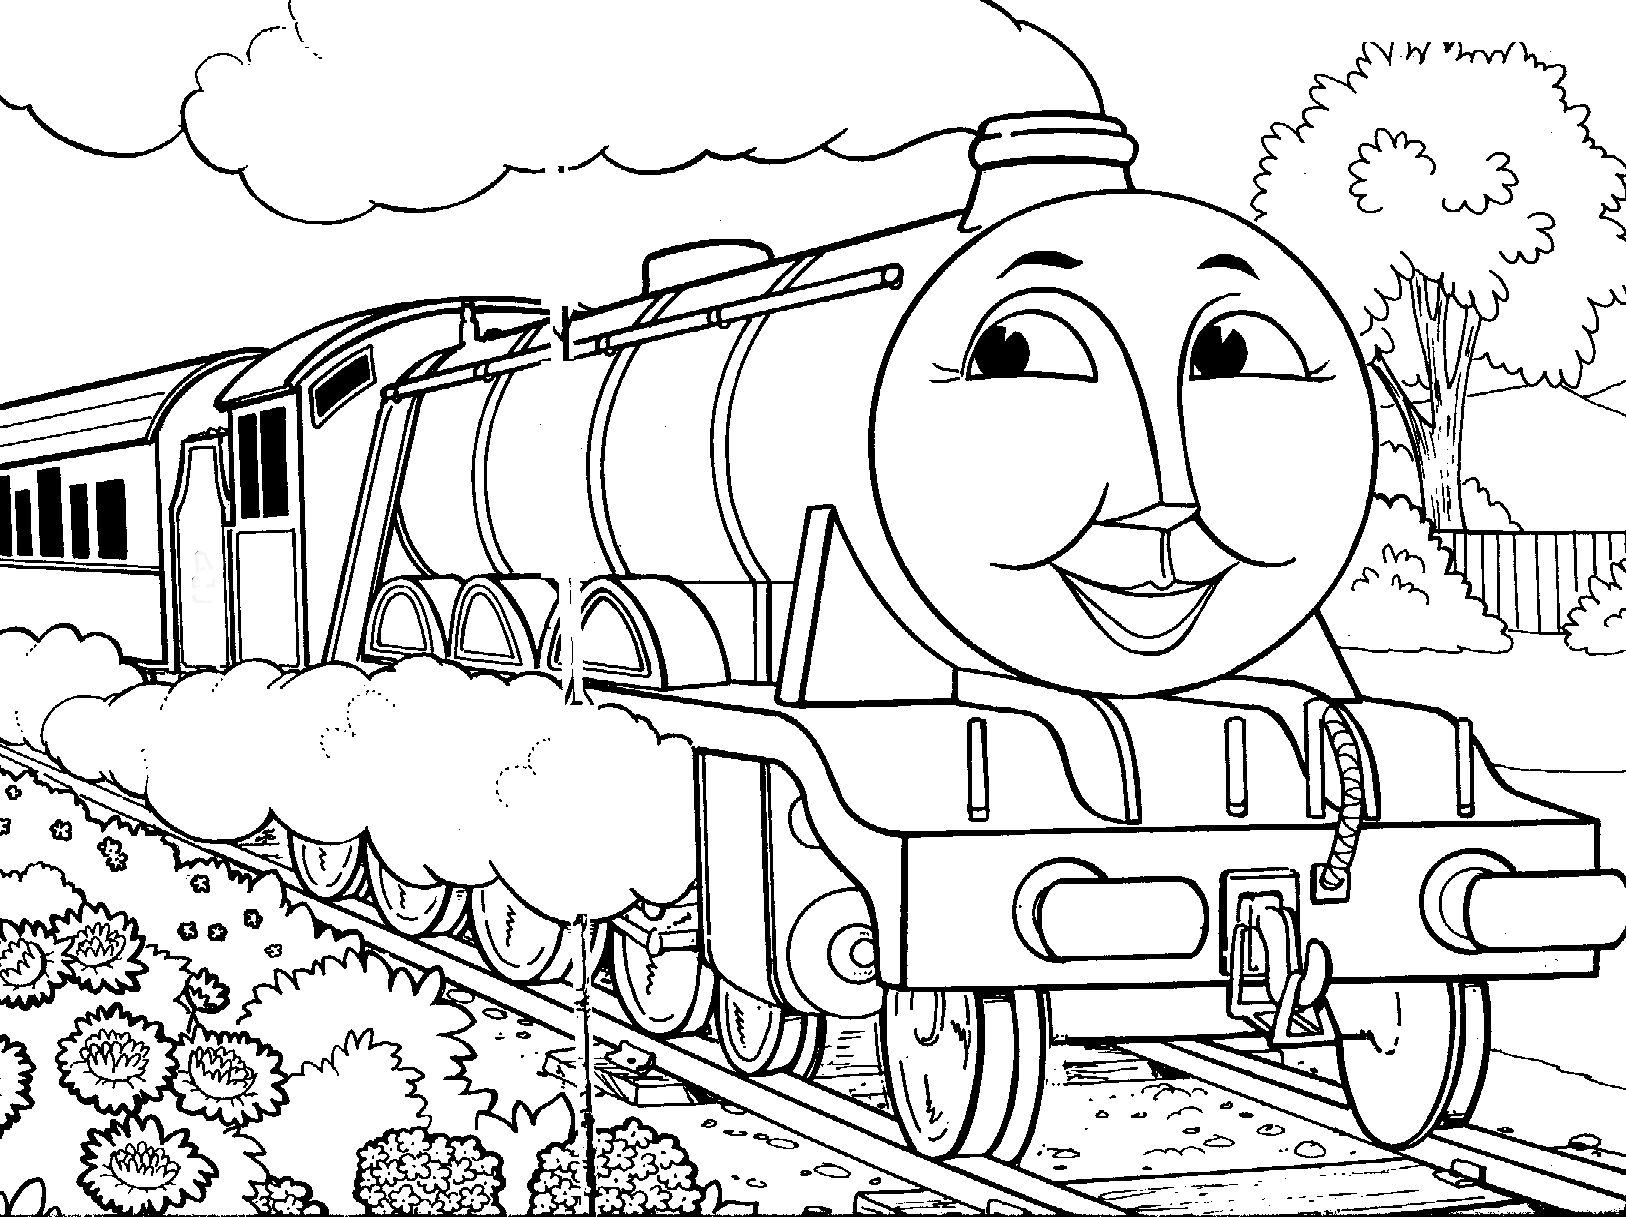 train engine coloring coloring page lewiss locomotive train coloring engine